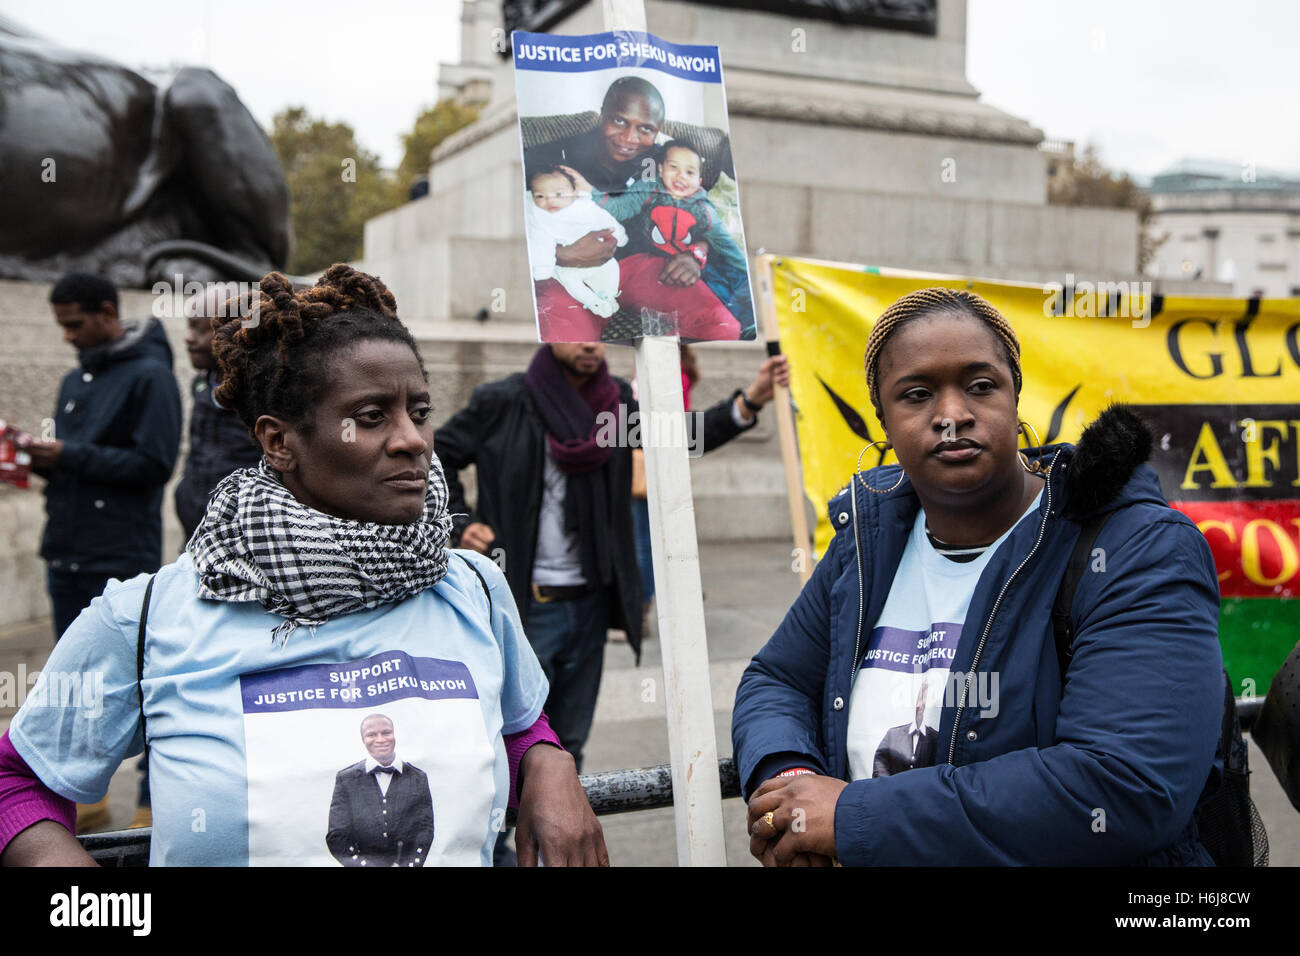 London, UK. 29th October, 2016. Relatives from the Justice for Sheku Bayoh campaign join the United Families and - Stock Image